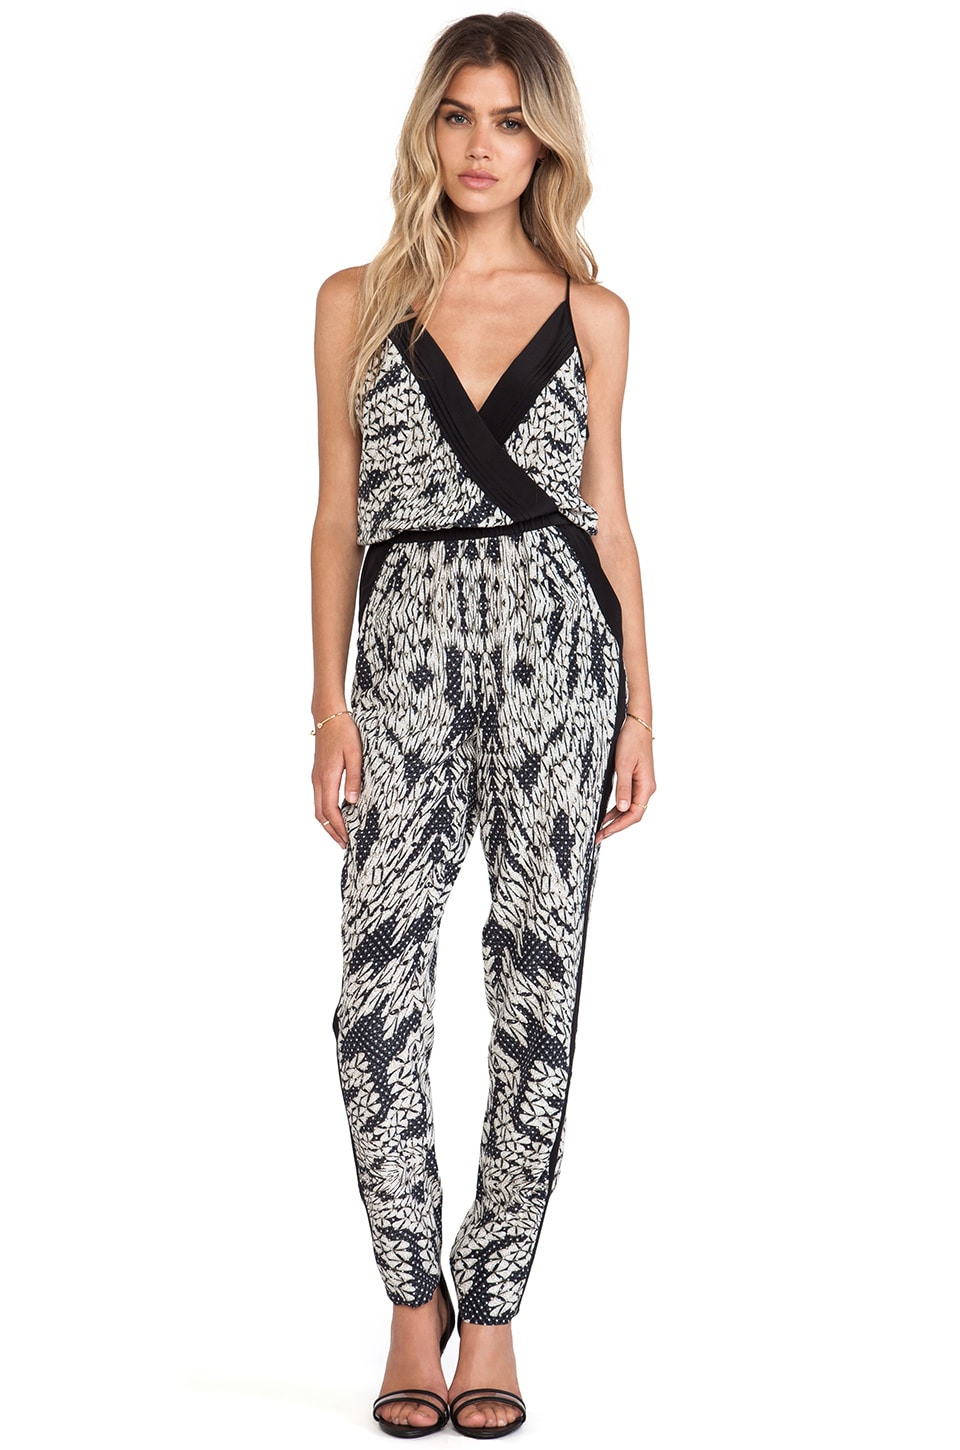 Diane von Furstenberg Shany Jumpsuit in Panther Lace Black